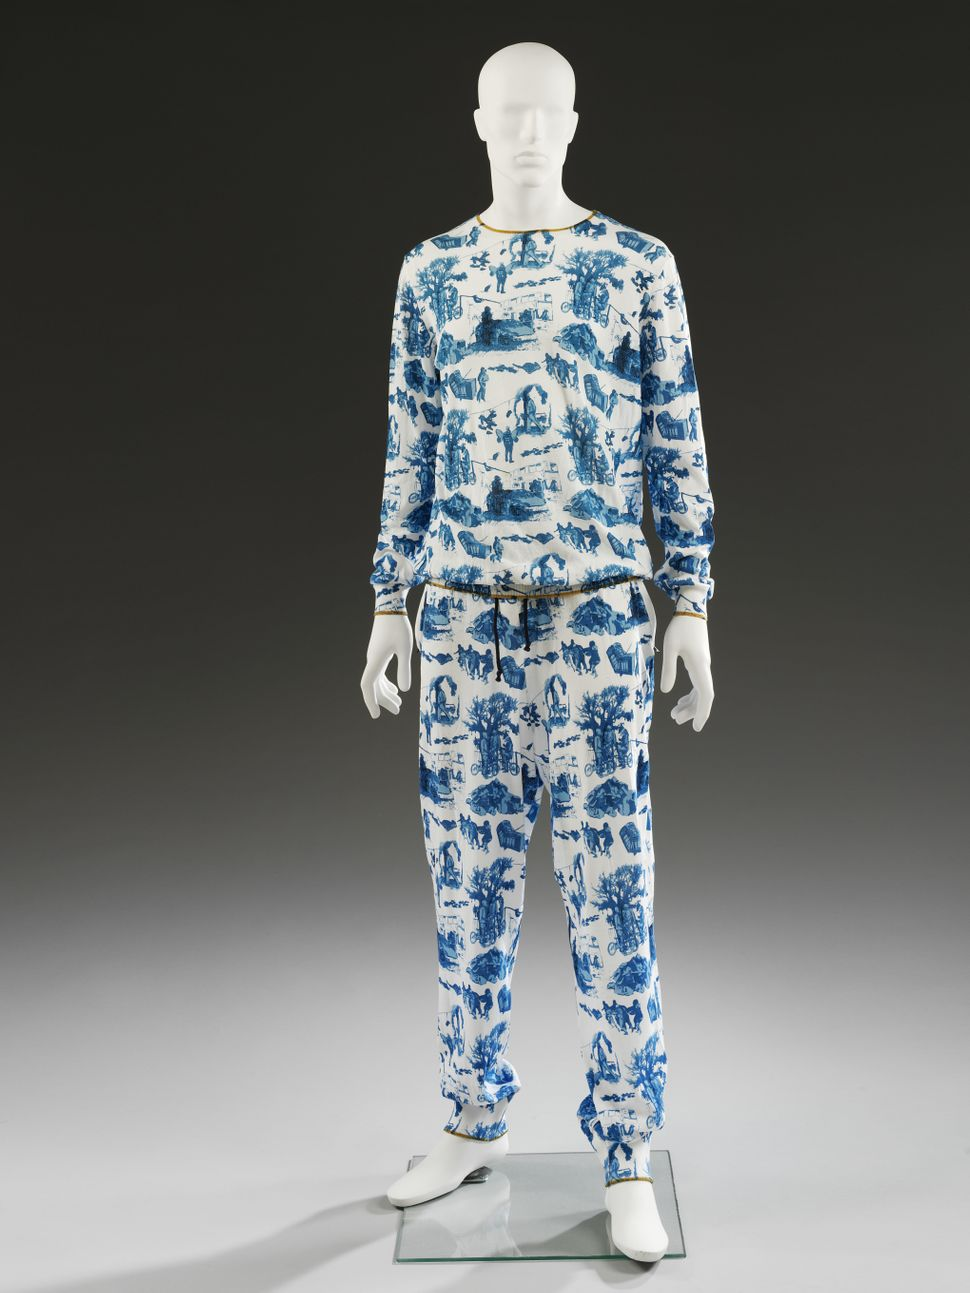 A man's top and pants designed by Sibling, 2013.